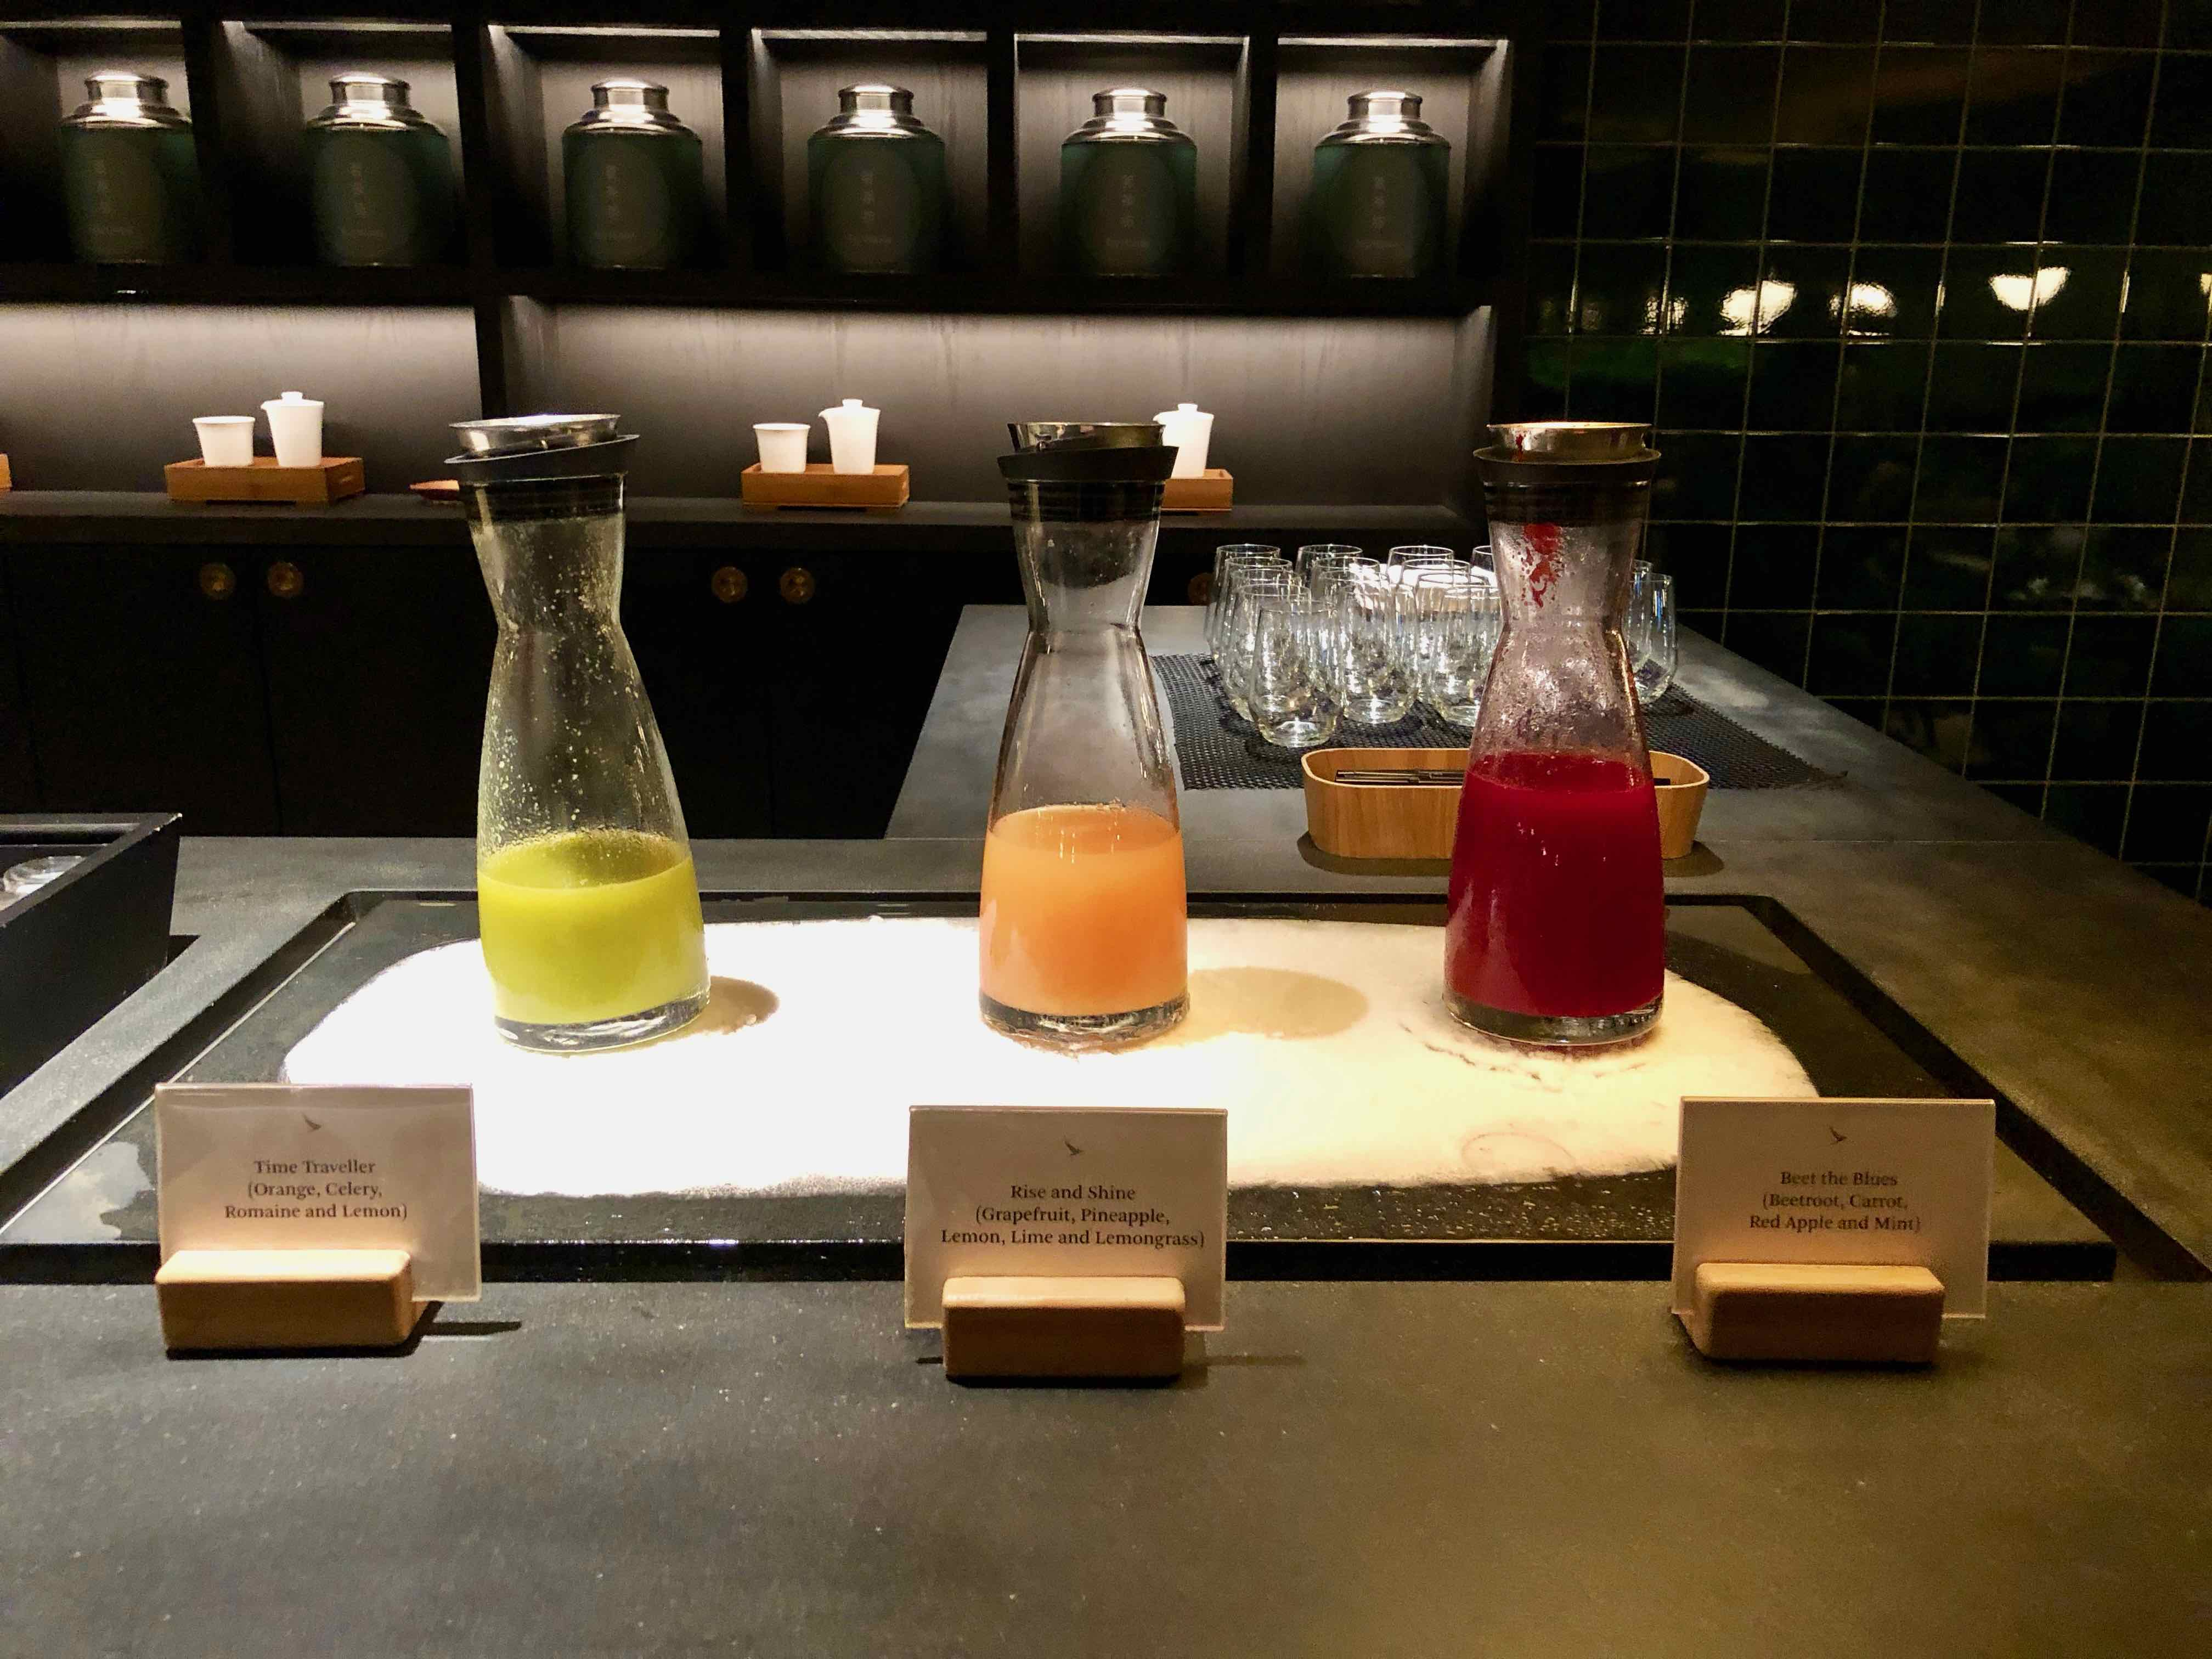 Cathay Pacific The Pier Business Class Lounge Hong Kong natural juice